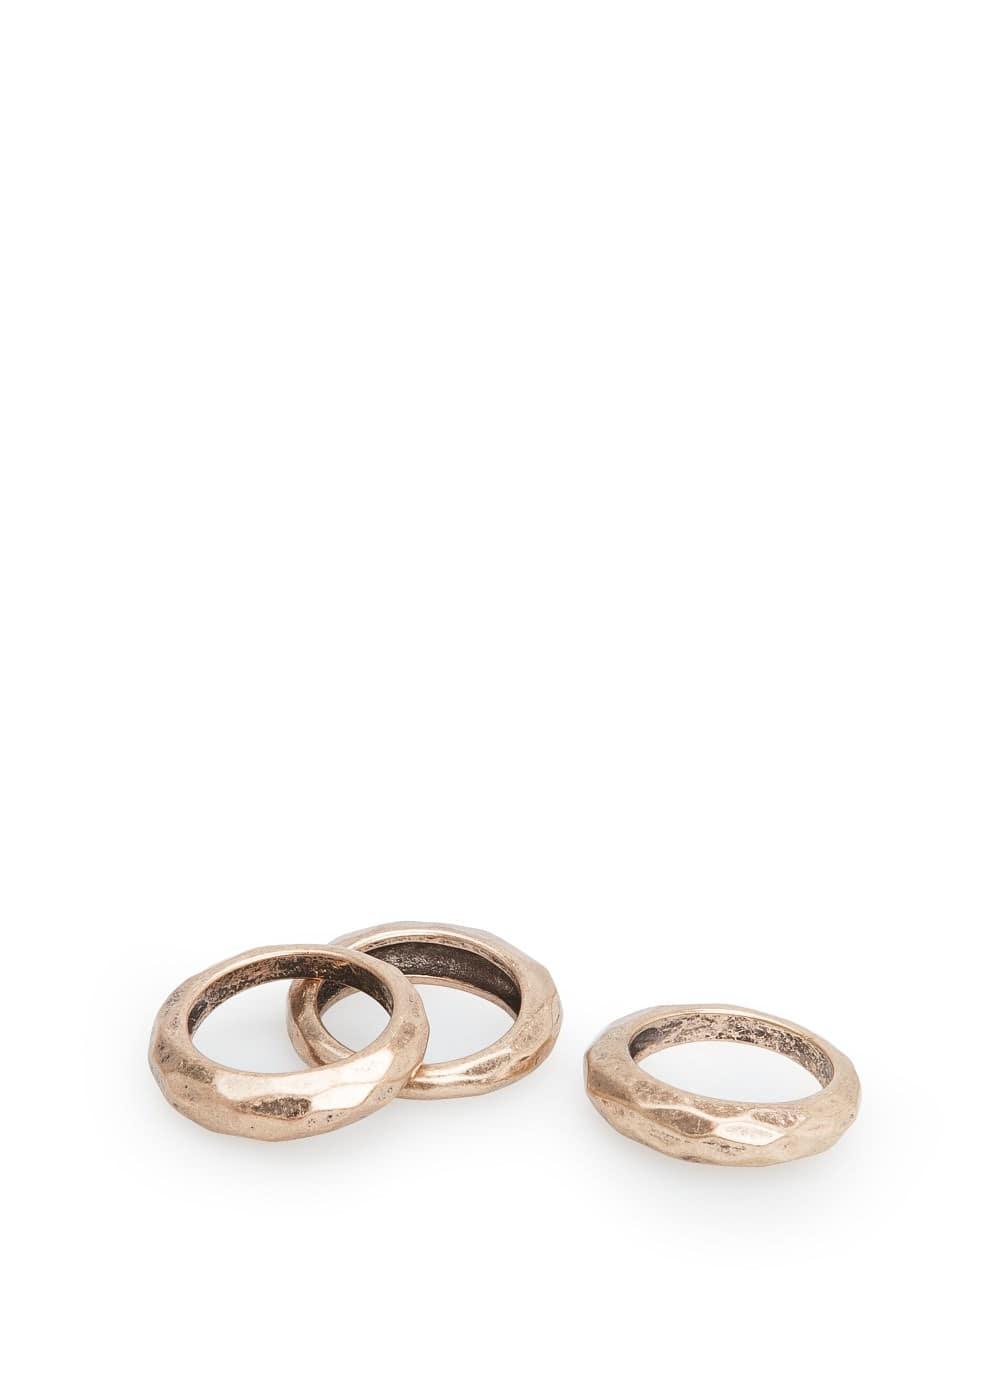 Hammered metal ring set